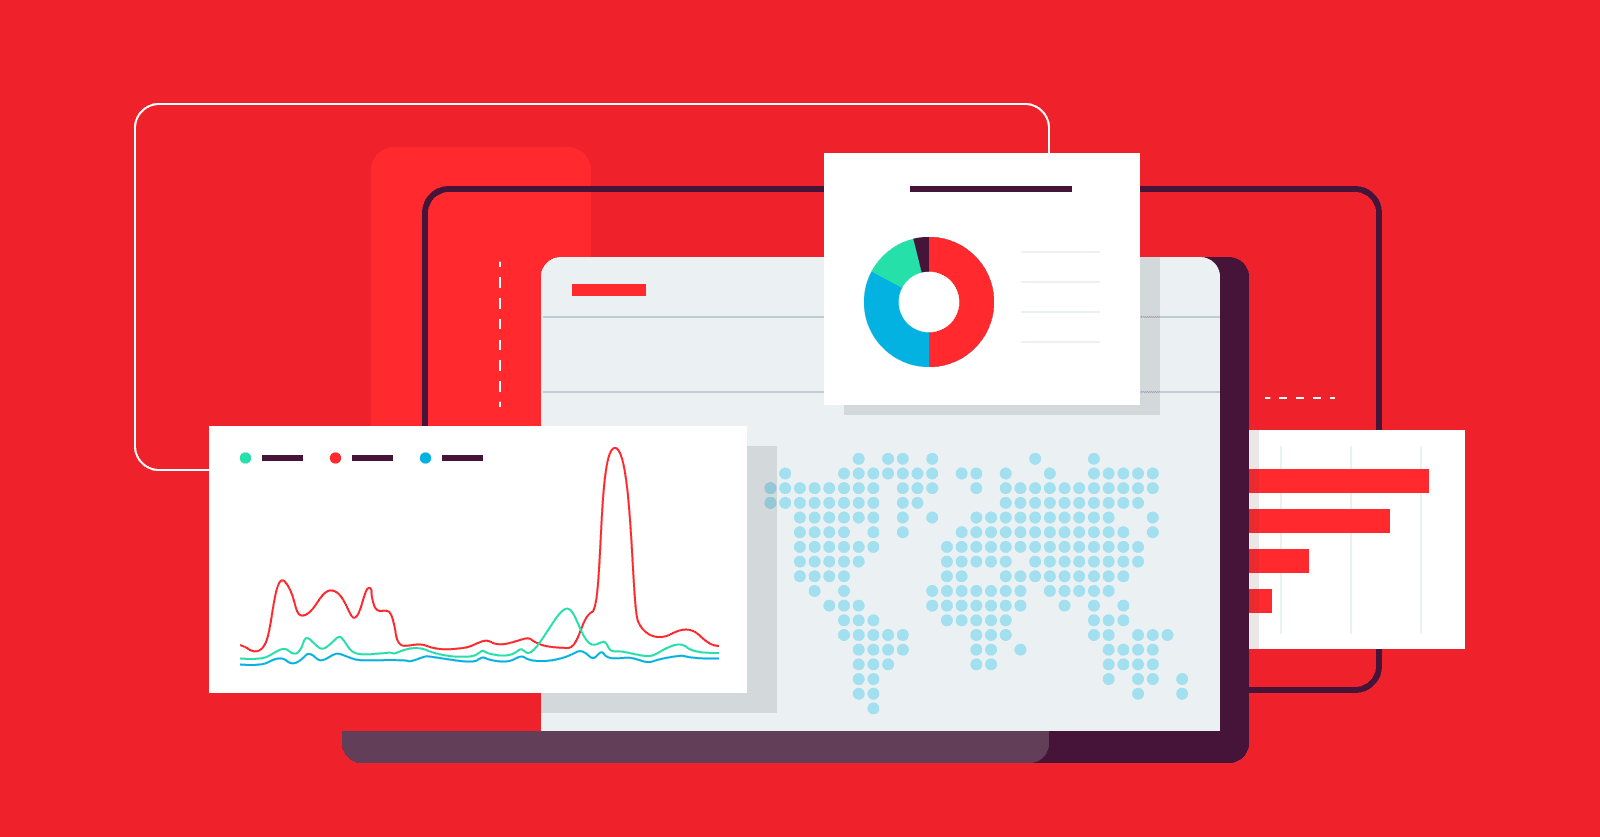 Fastly Customer and Revenue Statistics: How Many Businesses Use Fastly?